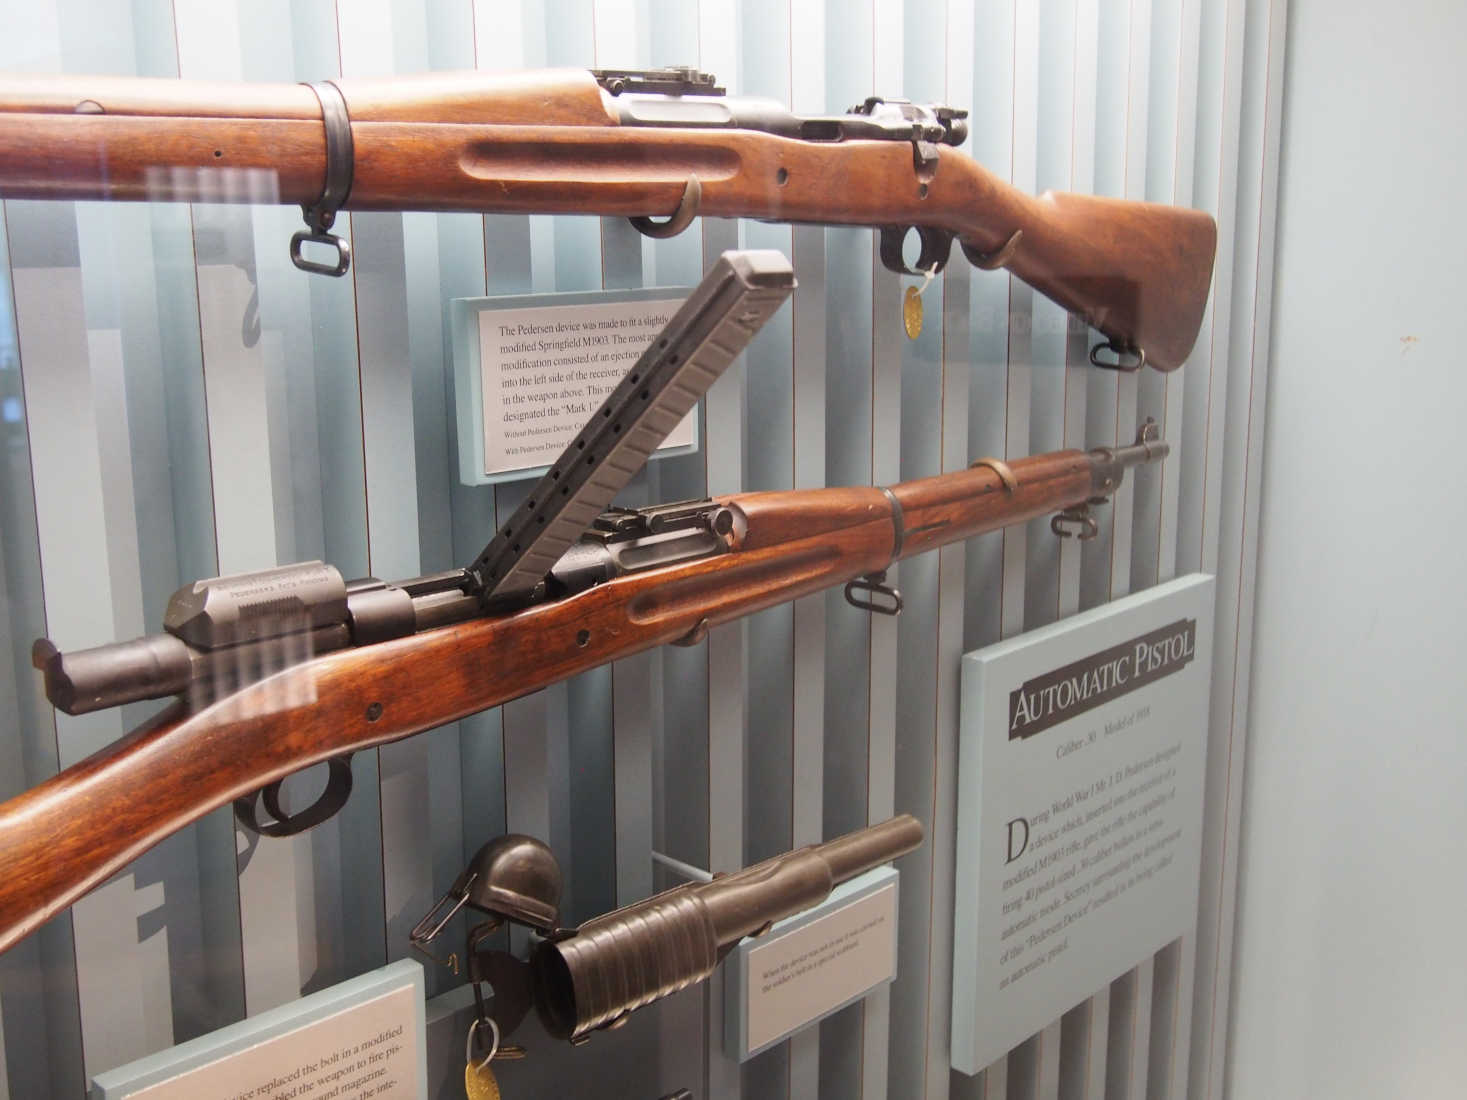 The Original Springfield Armory: America's First Arsenal